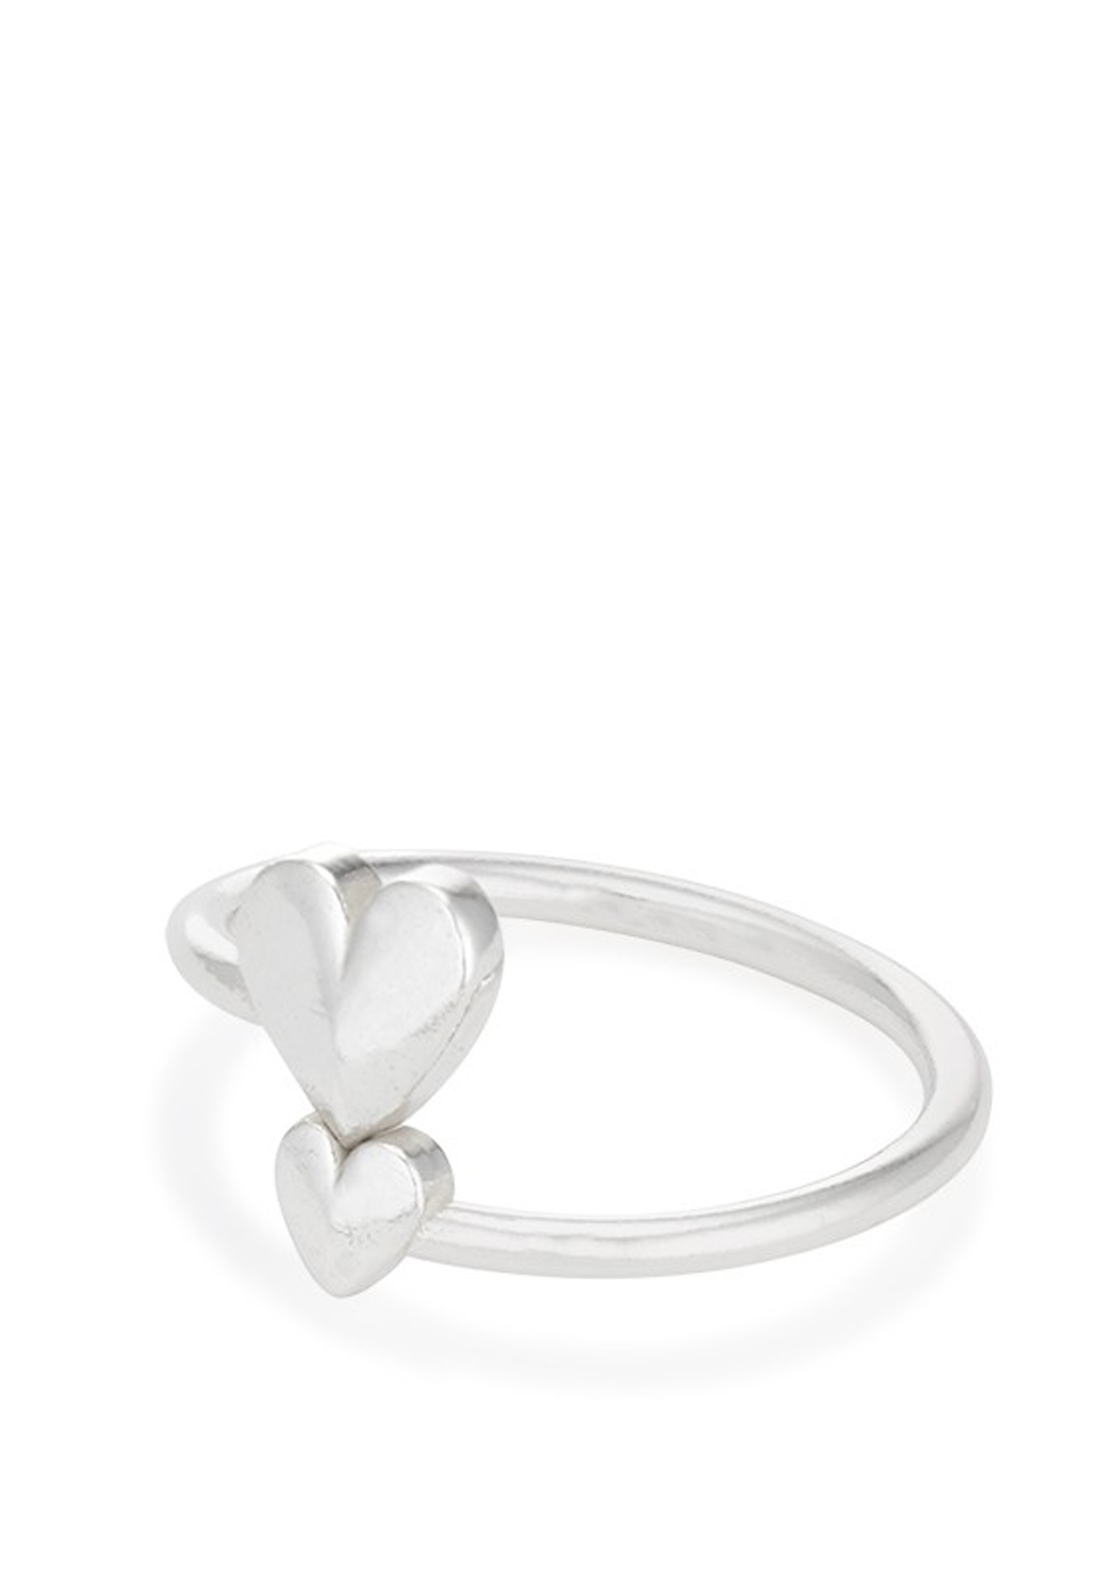 Alex and Ani Romance Heart Wrap Ring, Silver